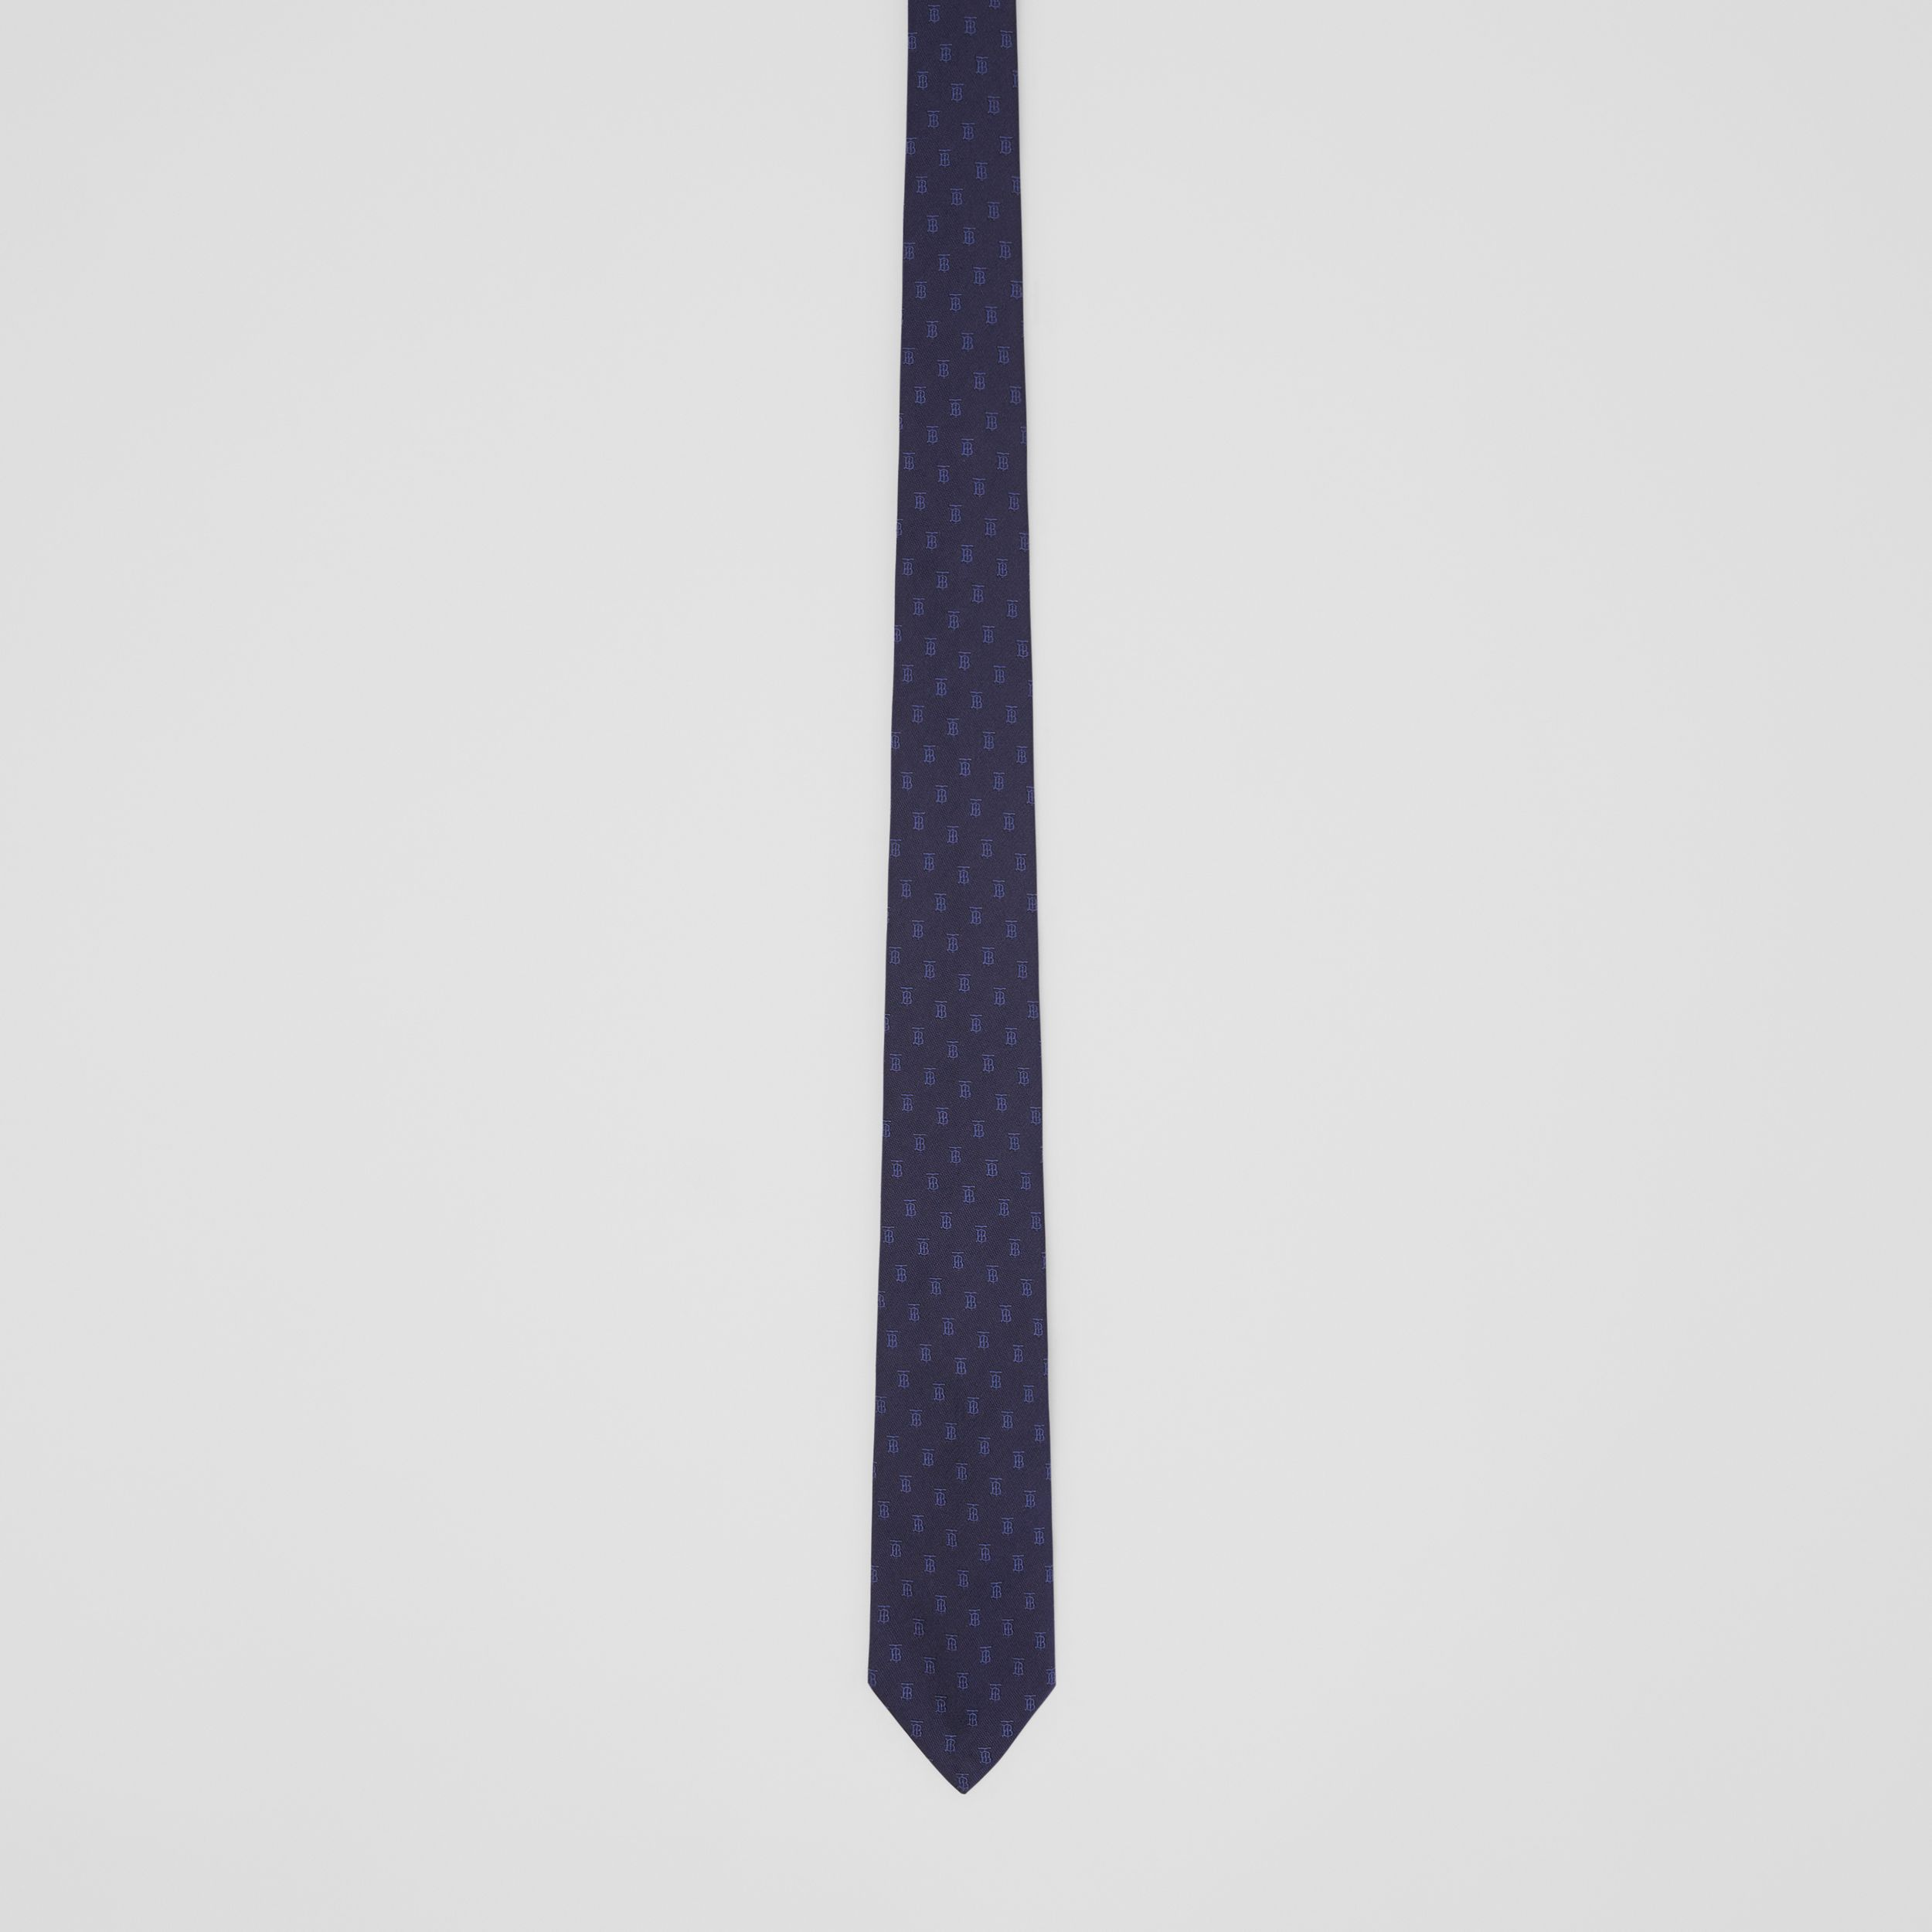 Classic Cut Monogram Motif Silk Jacquard Tie in Navy - Men | Burberry - 4